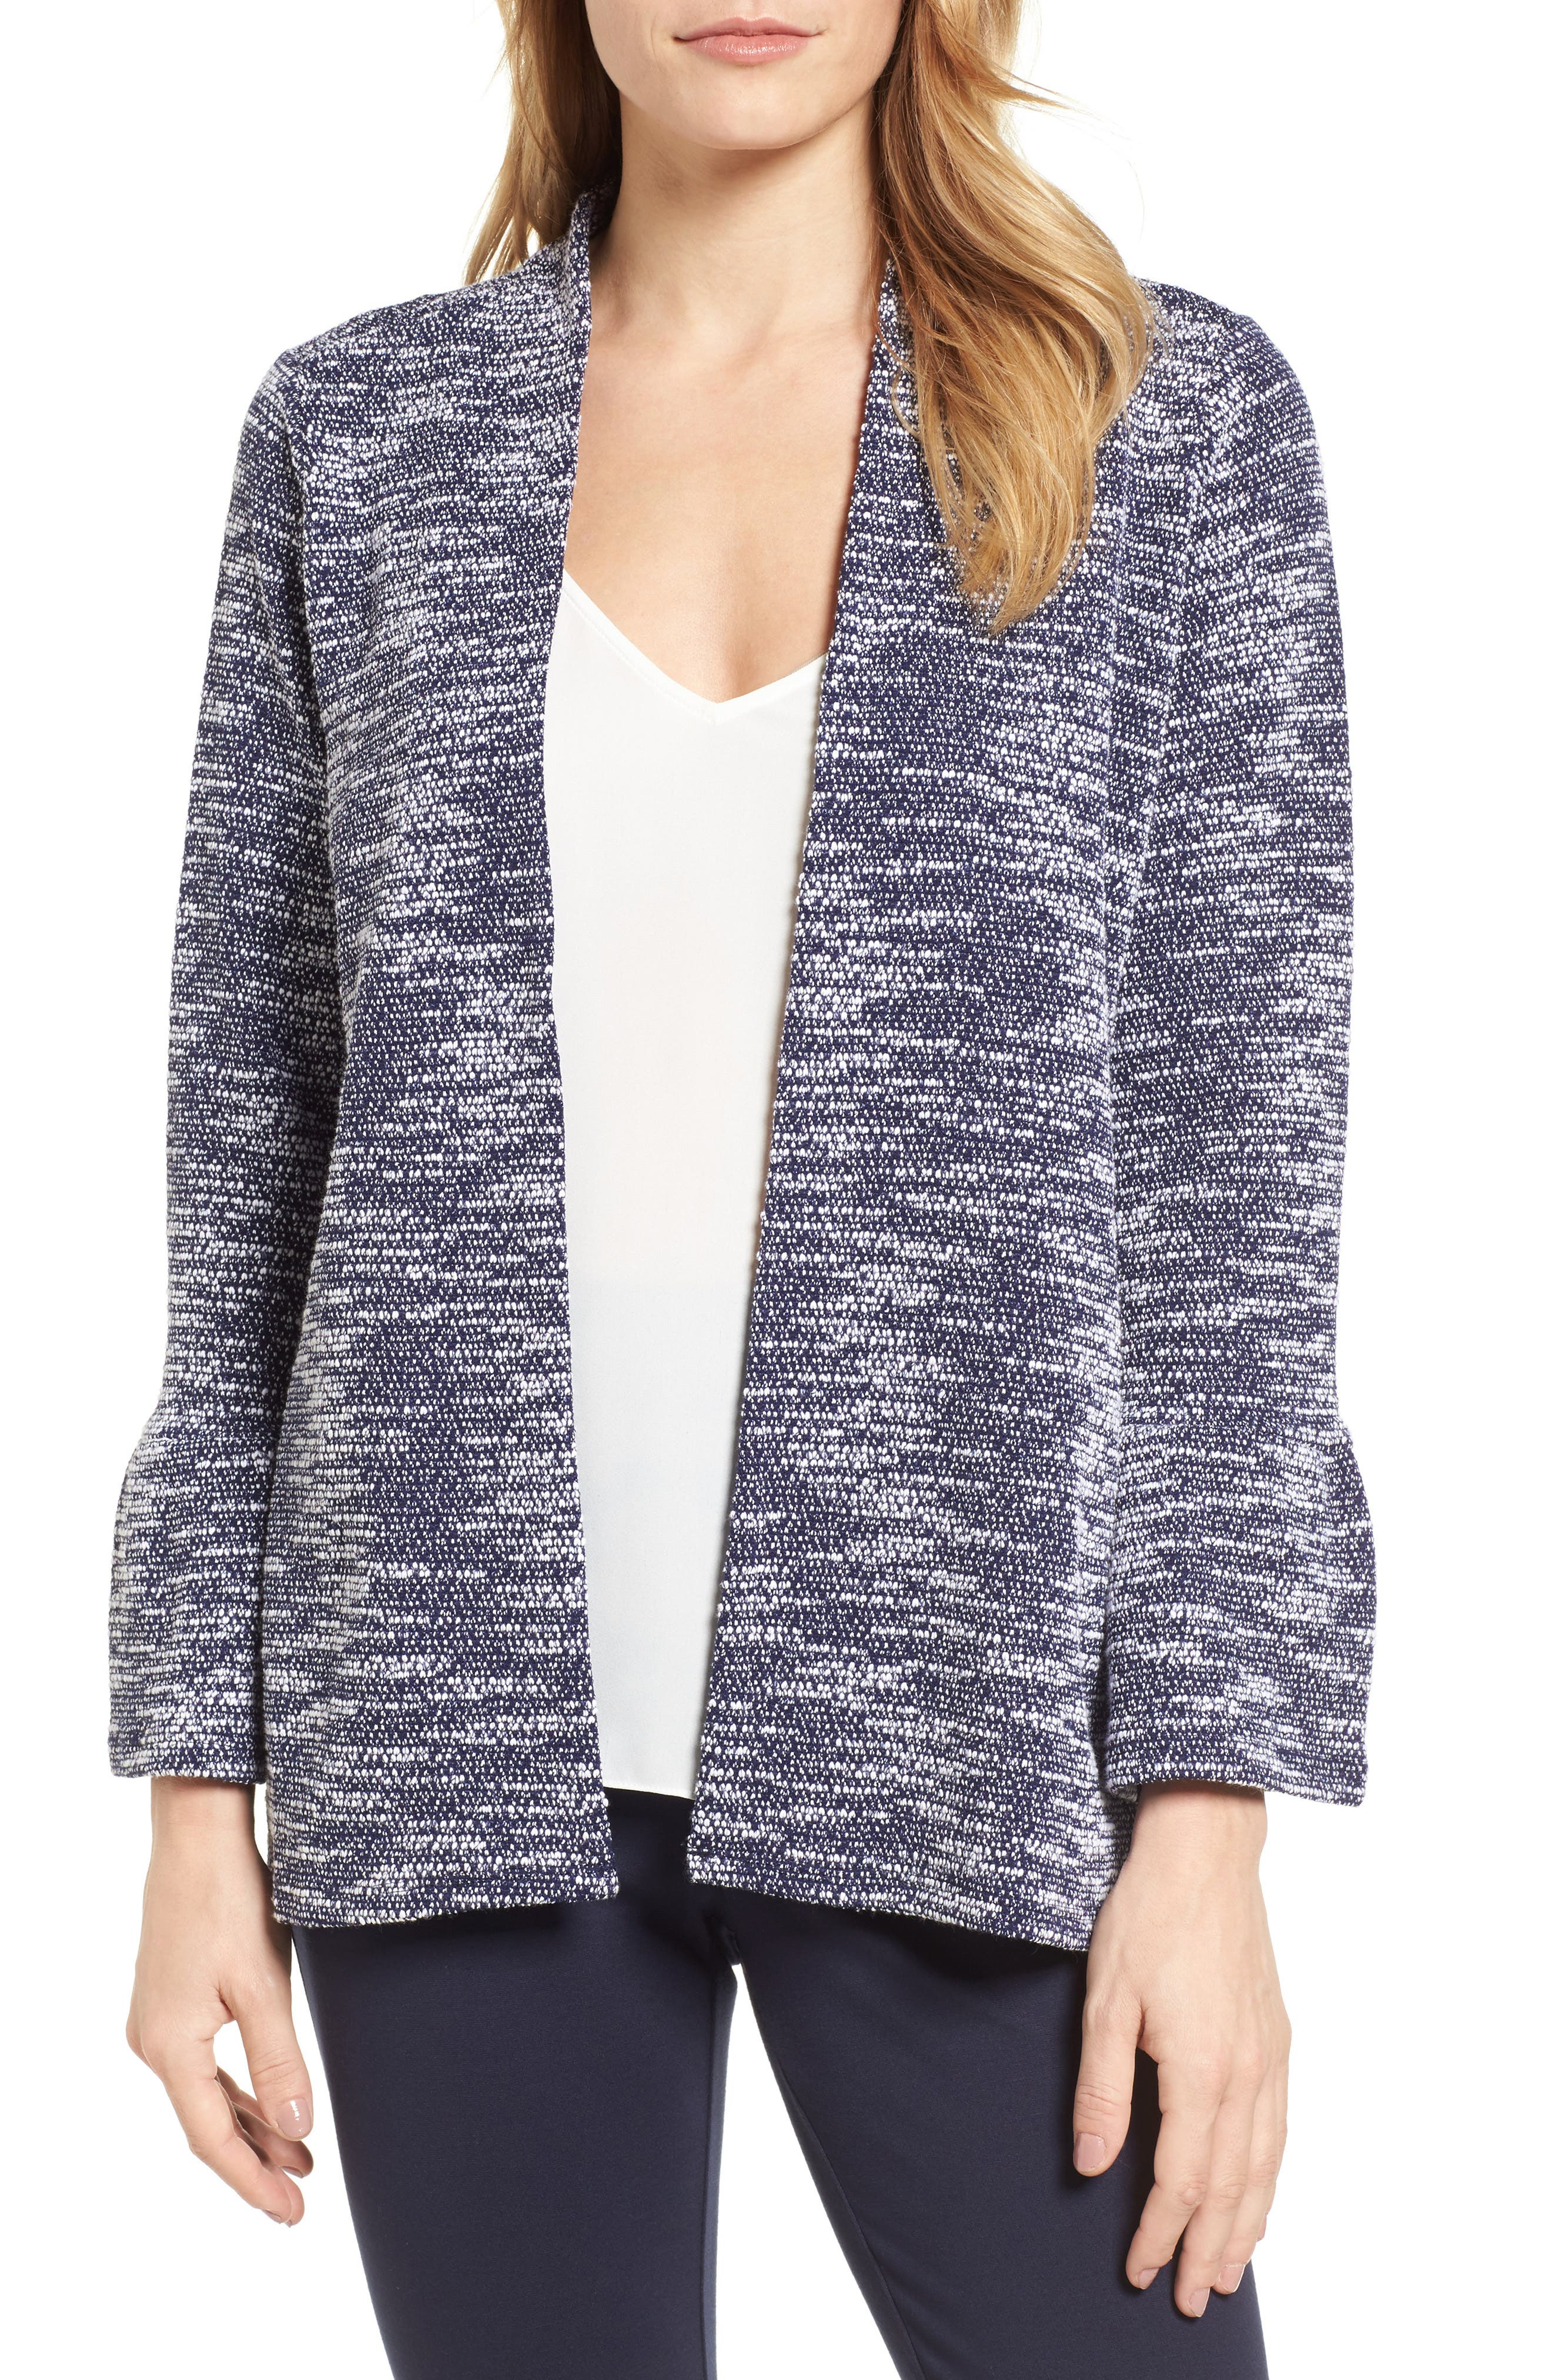 Bell Cuff Textured Cardigan,                             Main thumbnail 1, color,                             529-Evening Navy